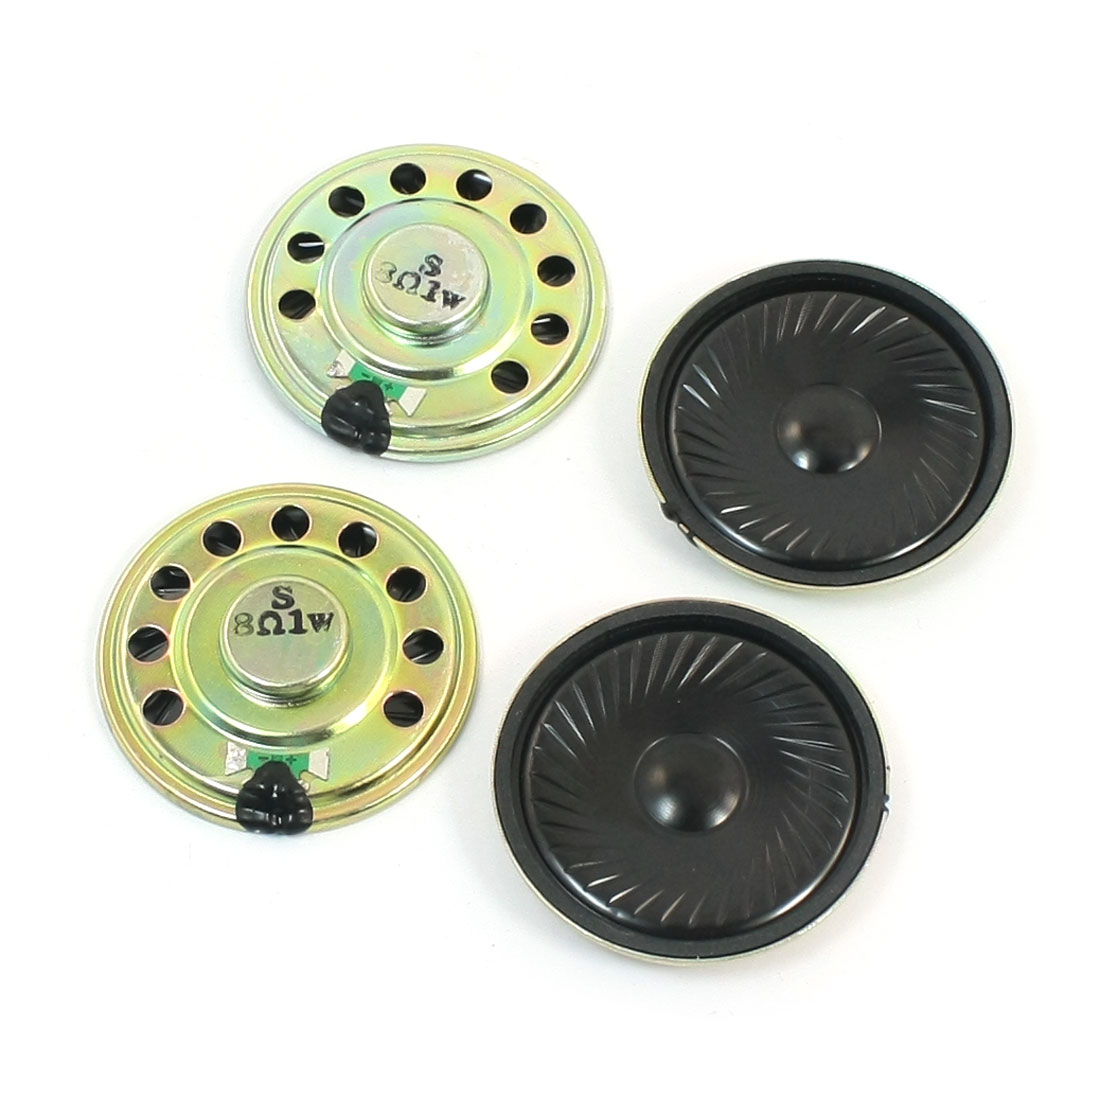 4 Pcs 50mm Dia Round Metal Housing Internal Magnet Metal Music Player Audio Speaker Amplifier Loudspeaker 1W 8 Ohm